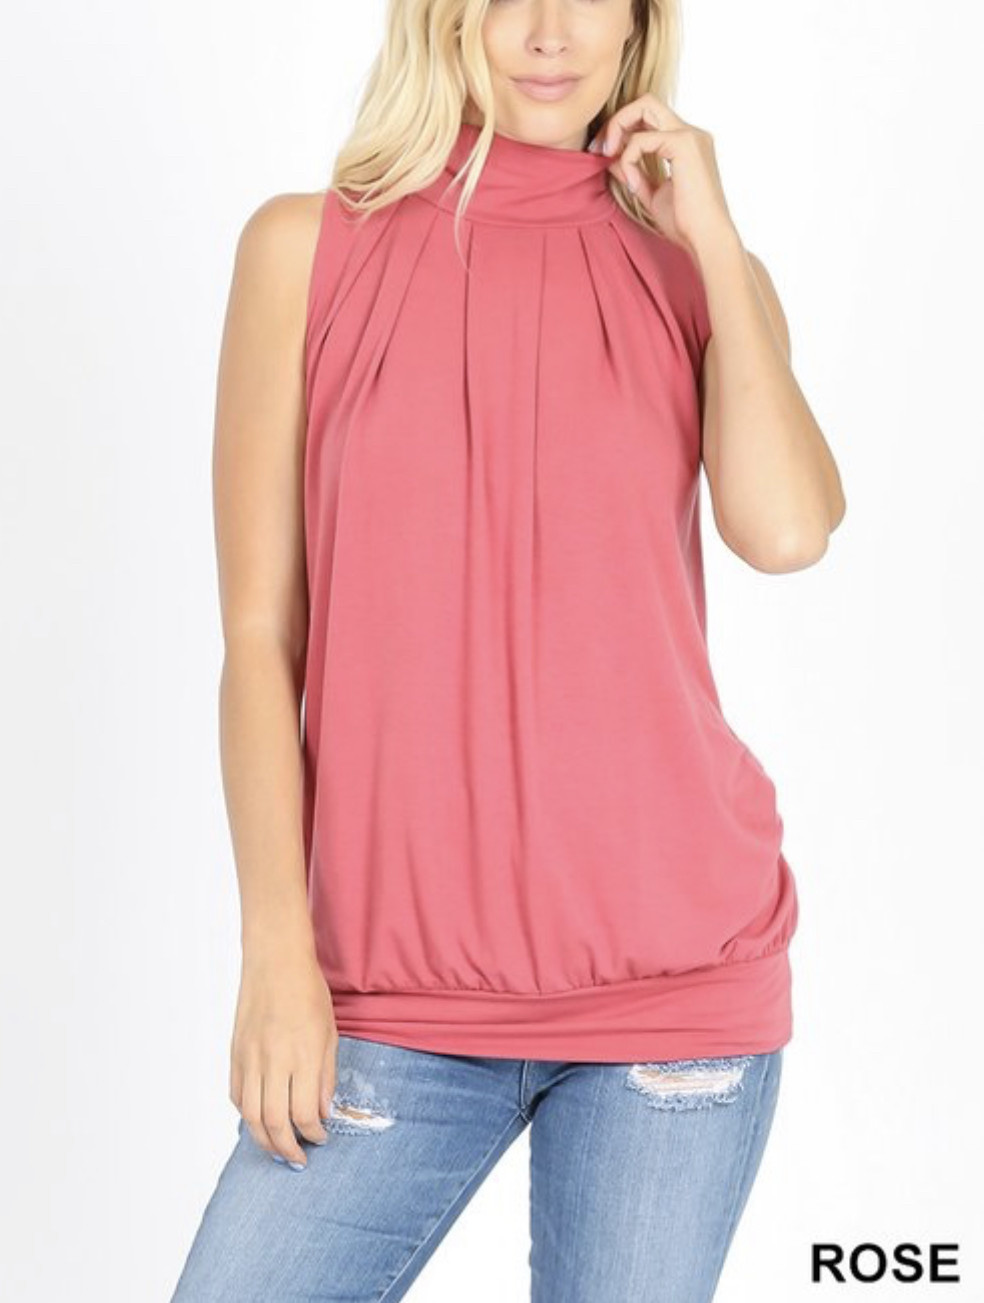 Rose High Neck Tank